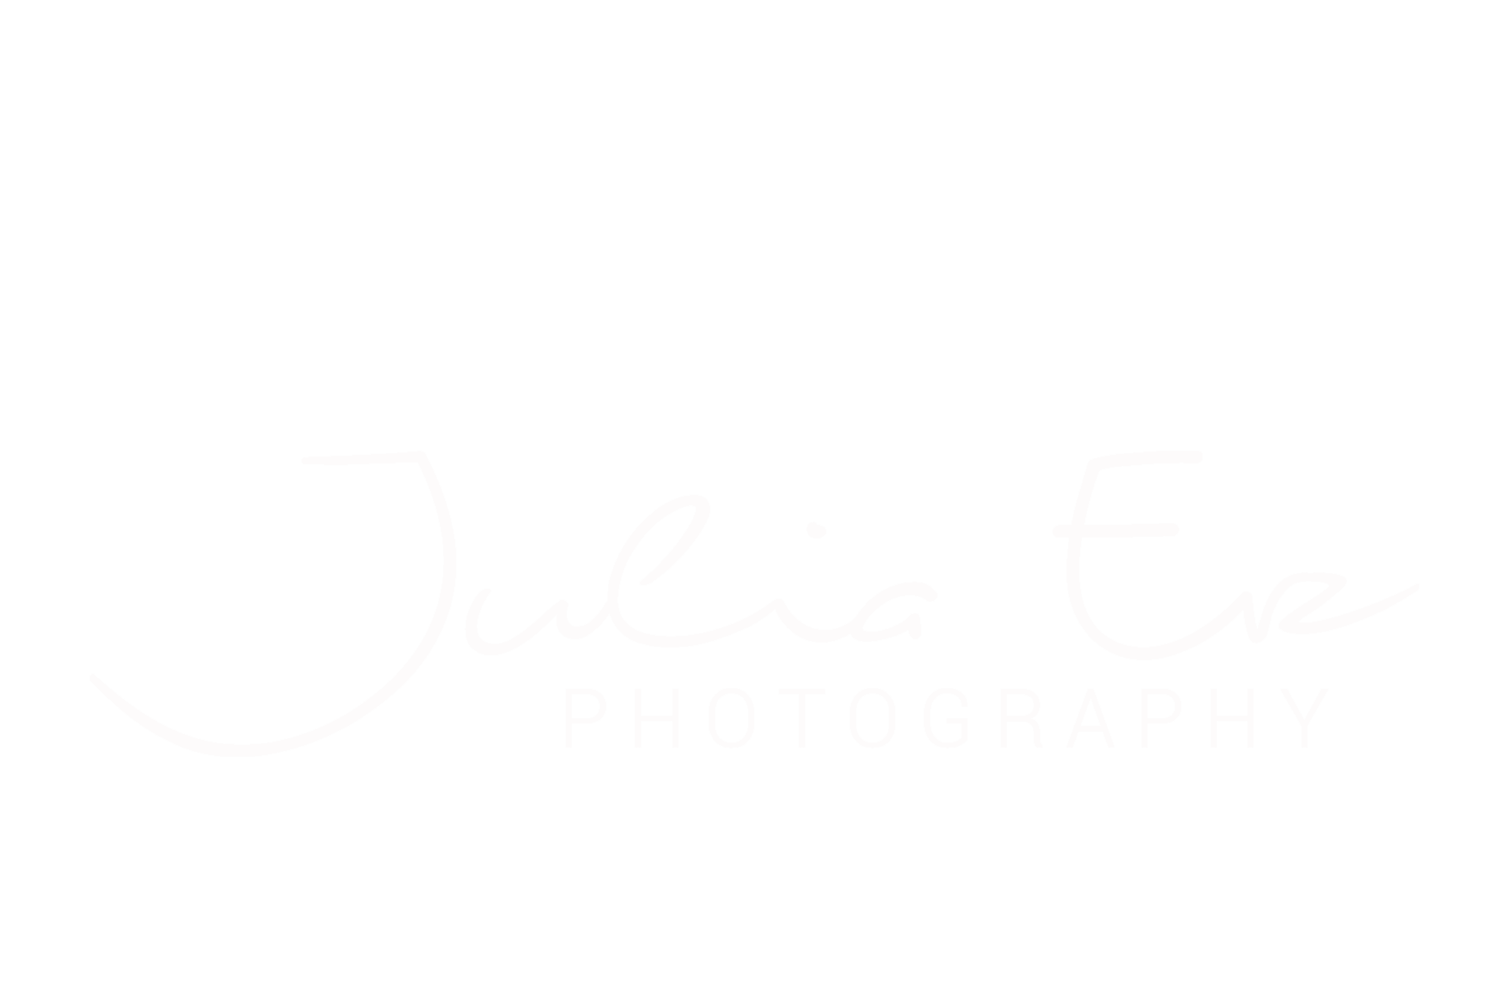 Julia Erz Photography